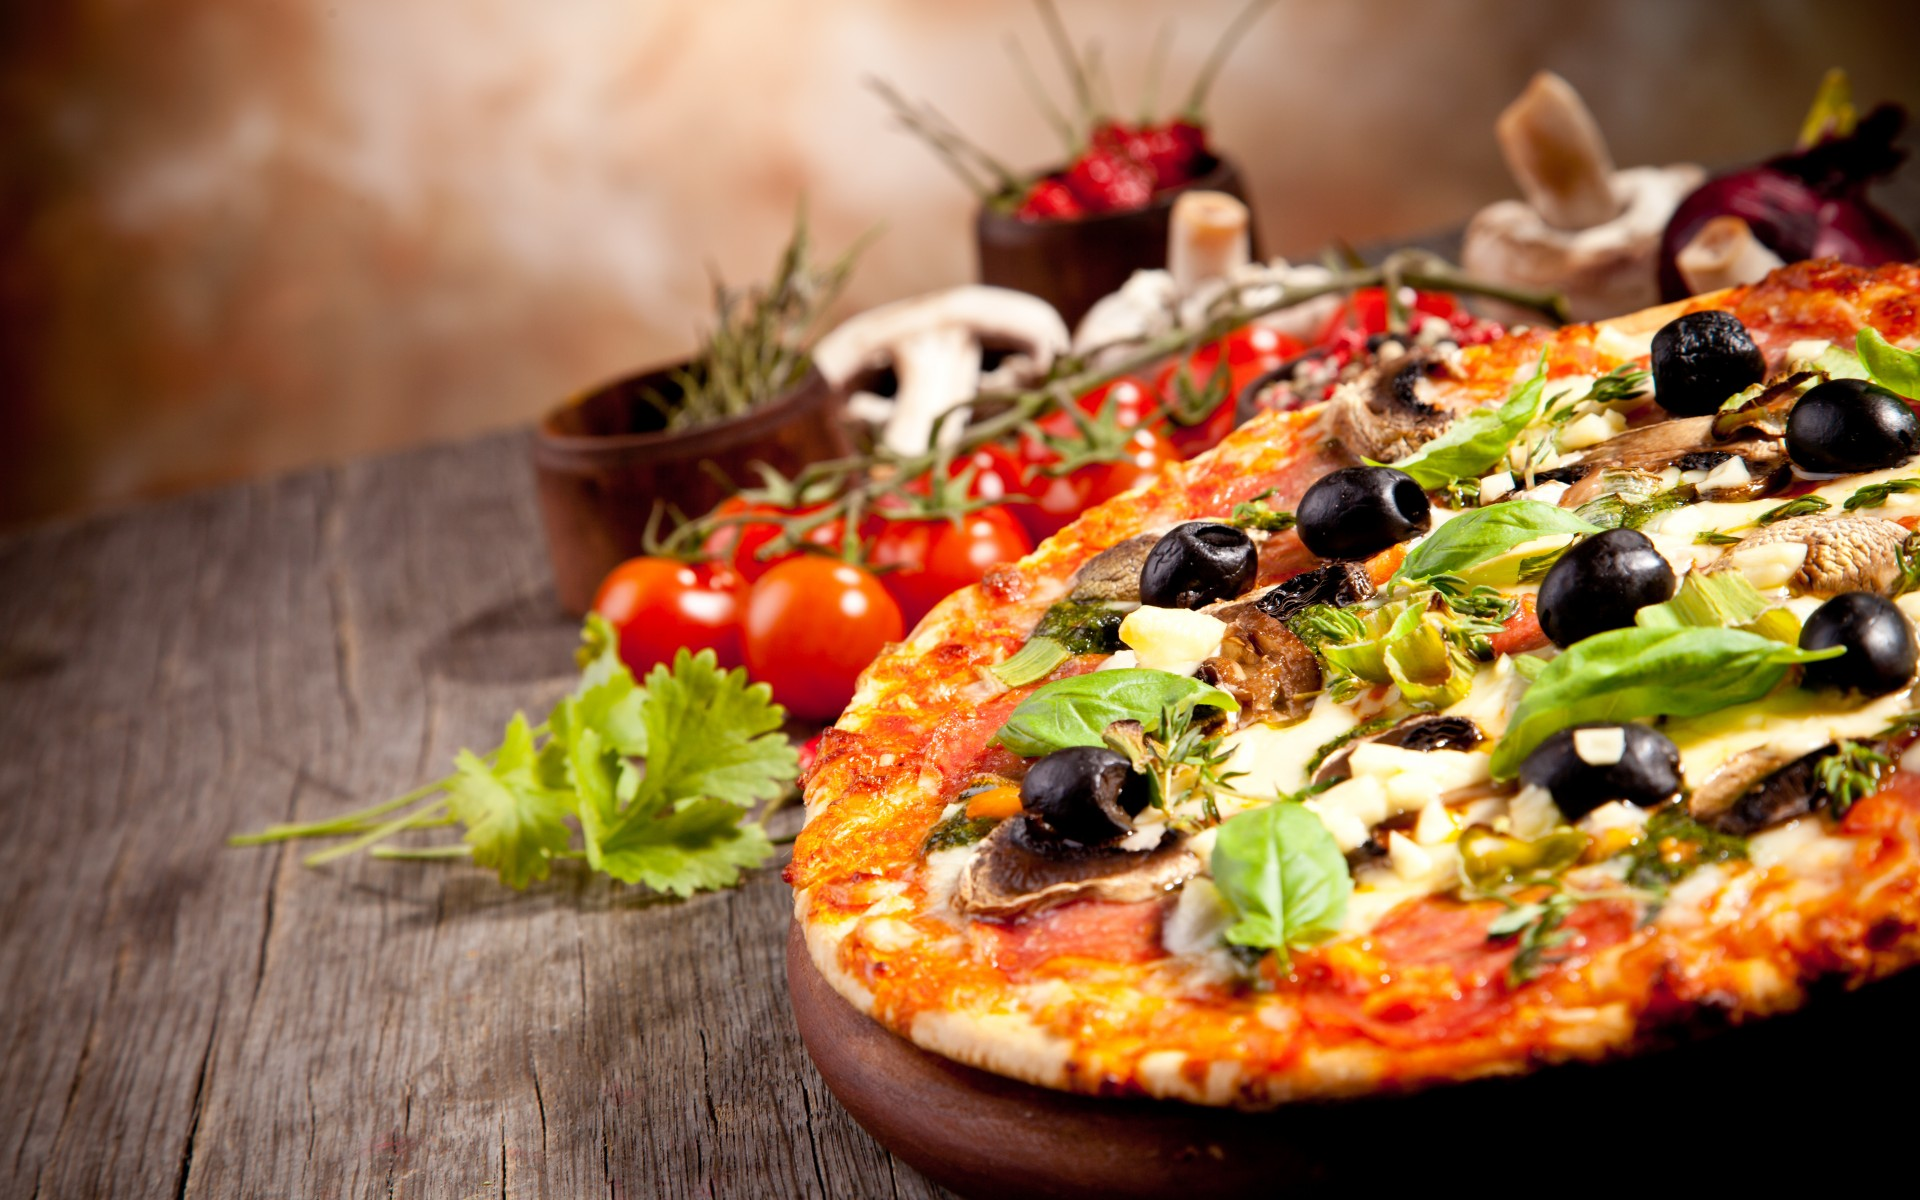 pizza-wallpaper-olives-mushrooms-cheese-tomatoes-parsley-dish-food